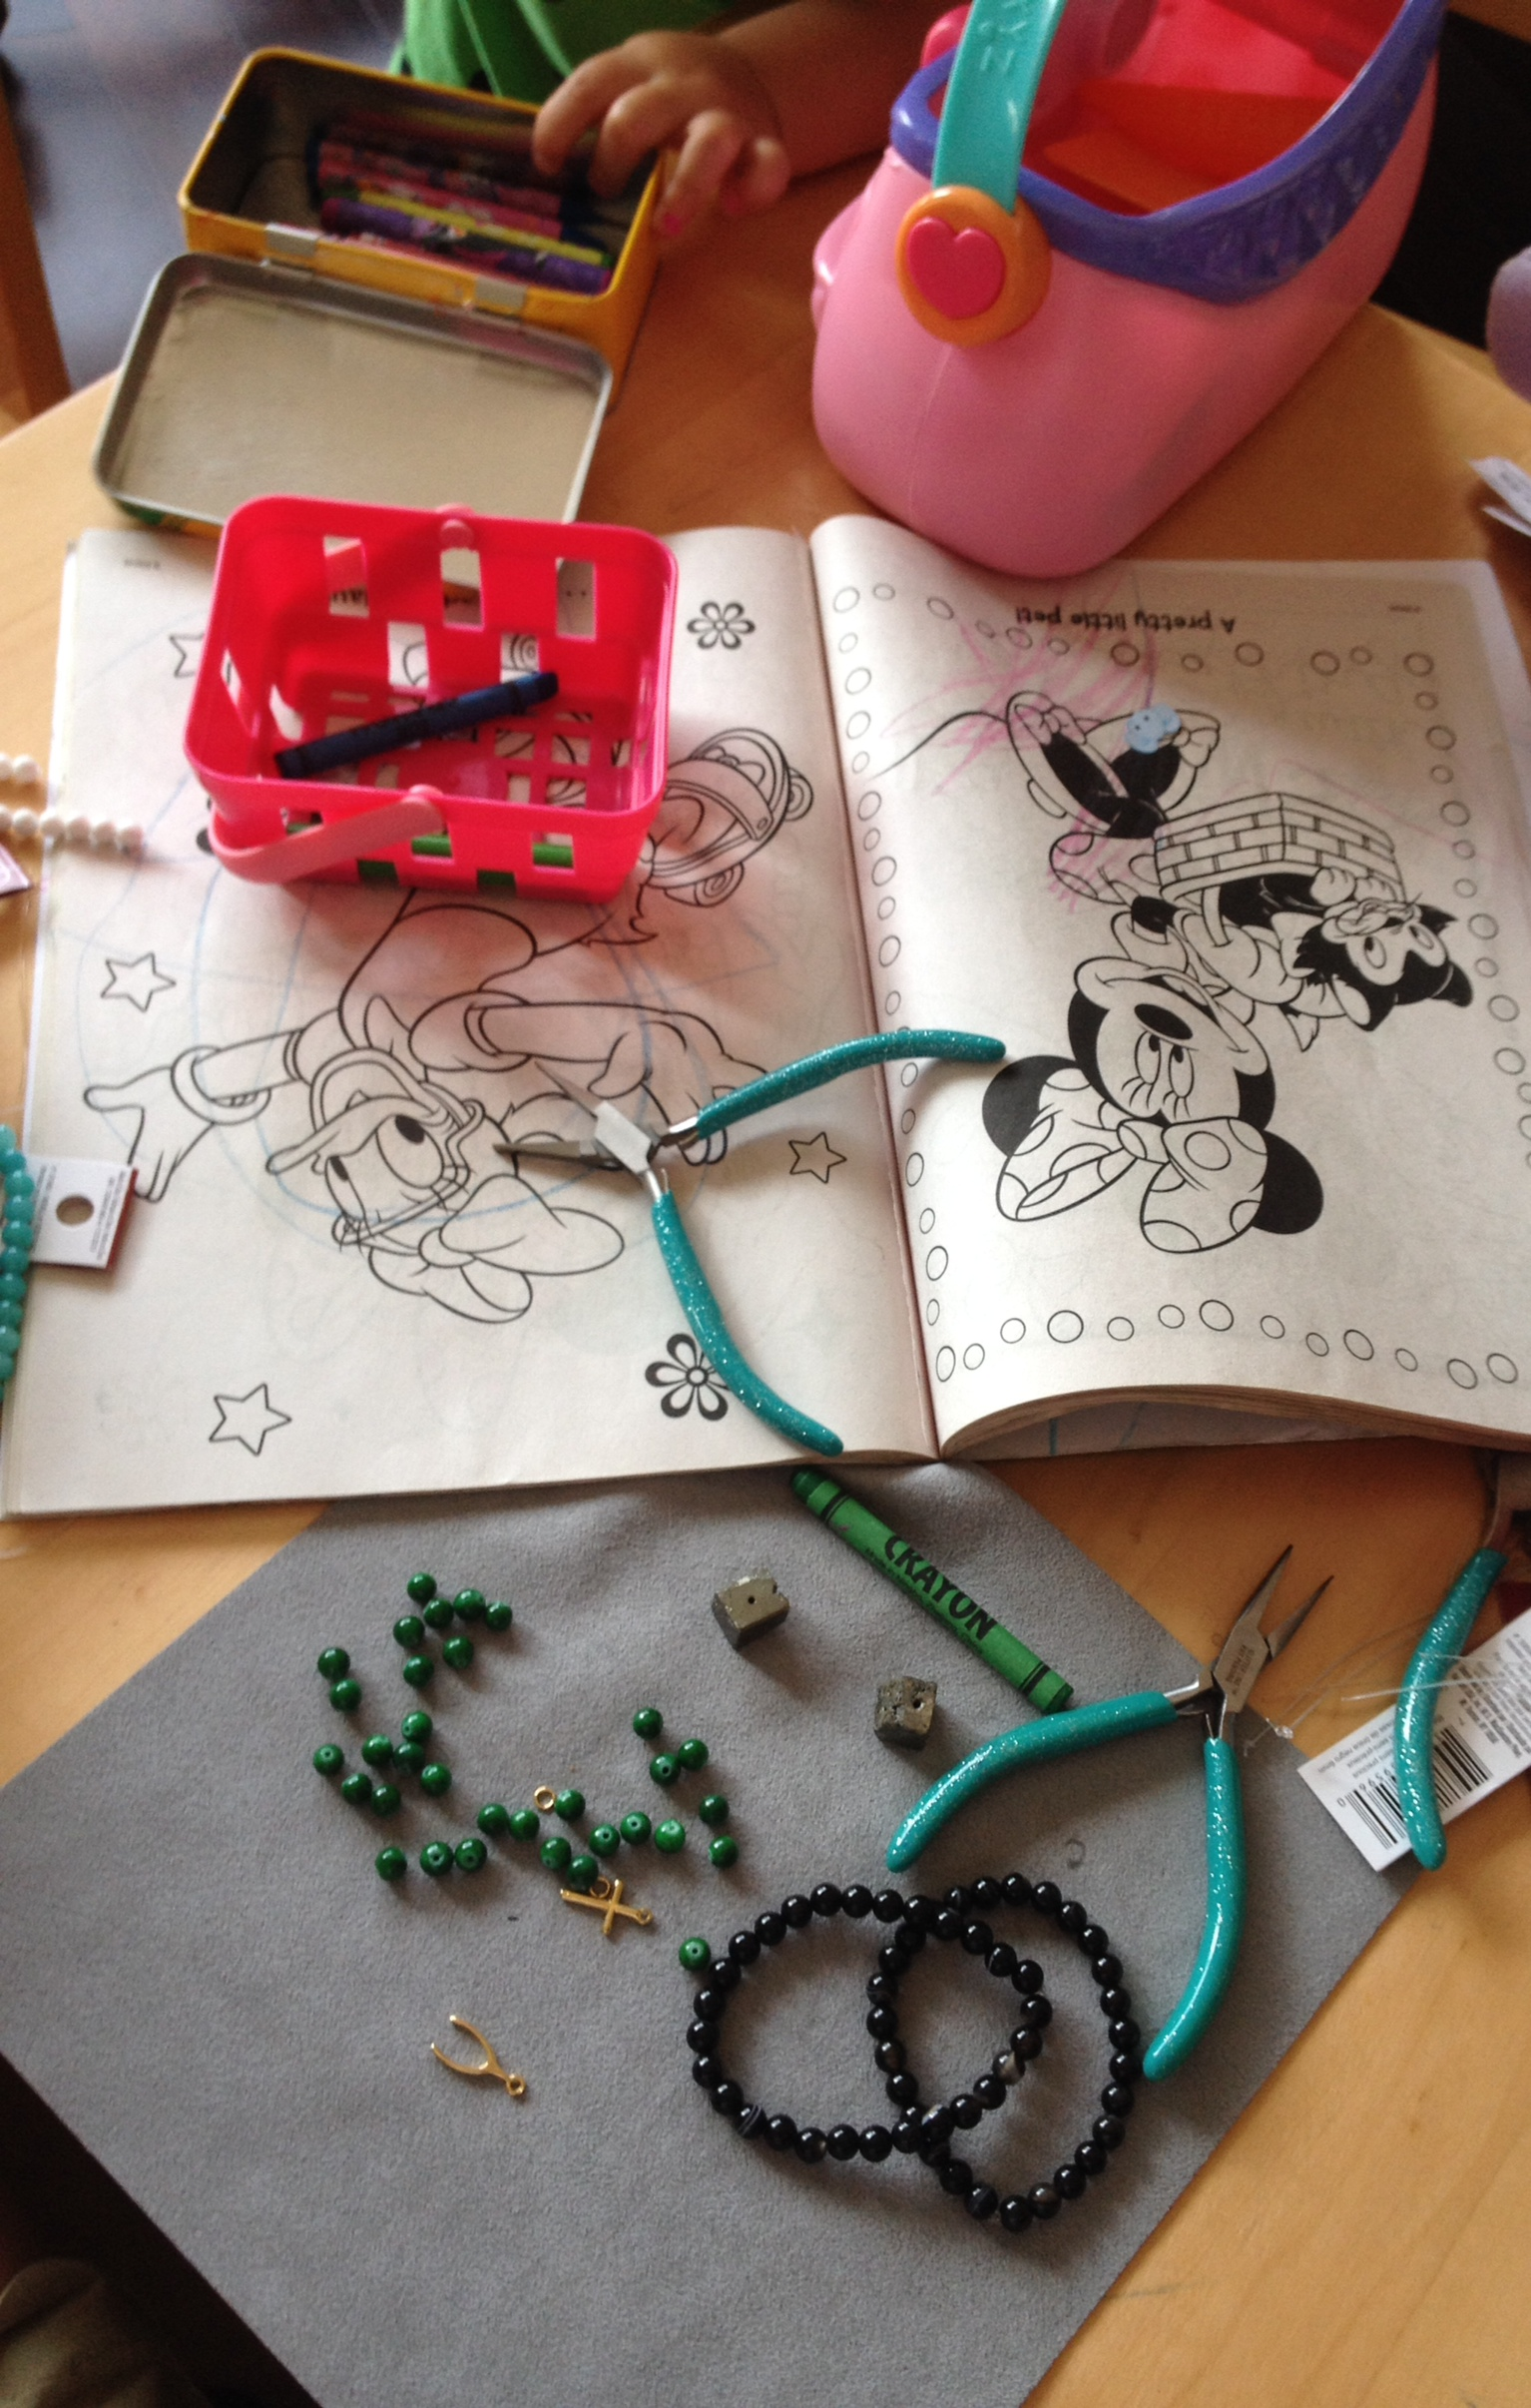 A Minnie Mouse coloring book, beads, charms, and crayons. Sounds like a party to me!